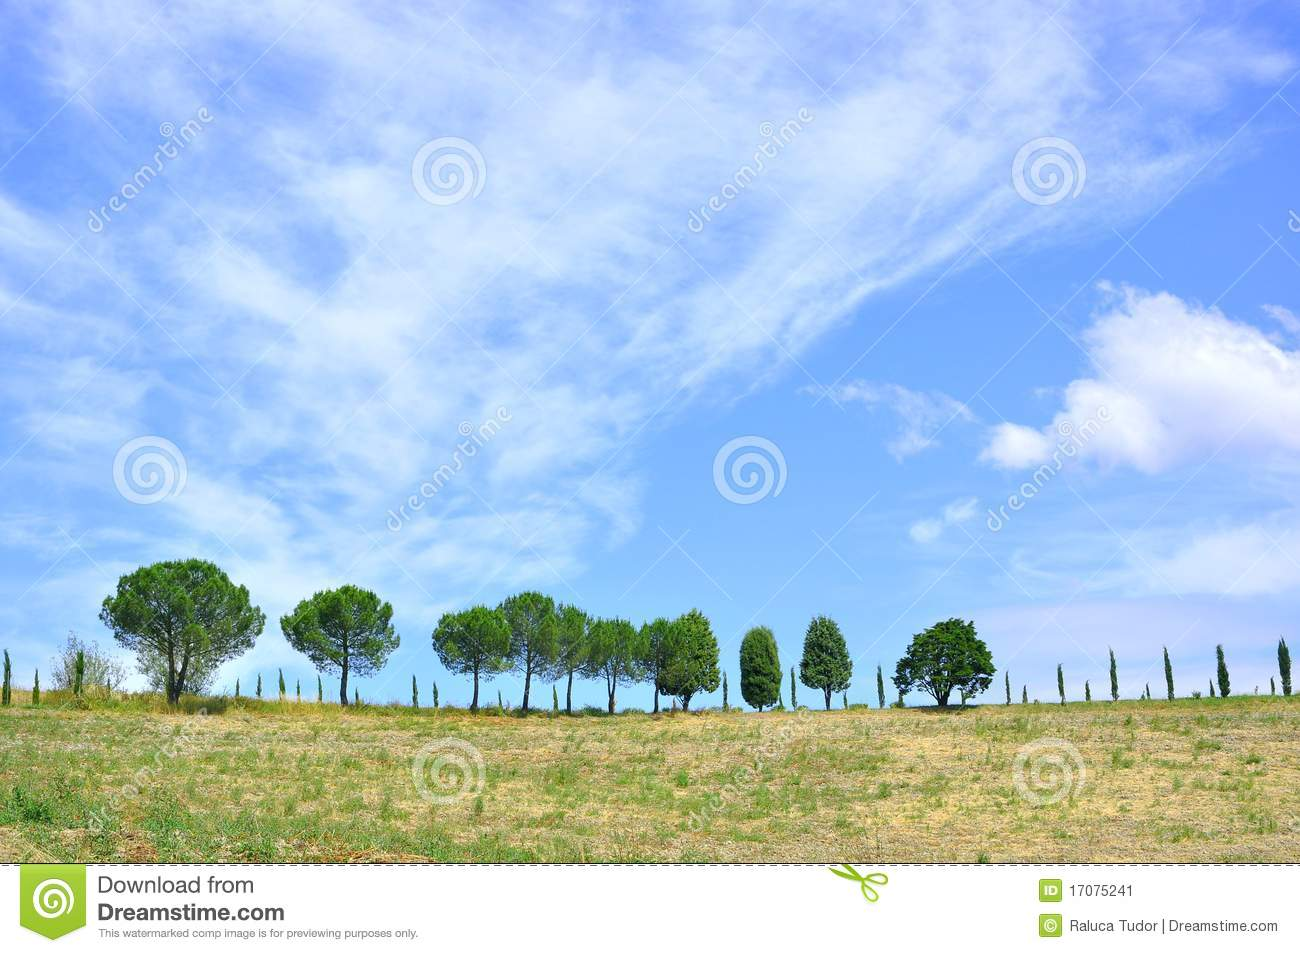 Tuscan rural landscape in Italy